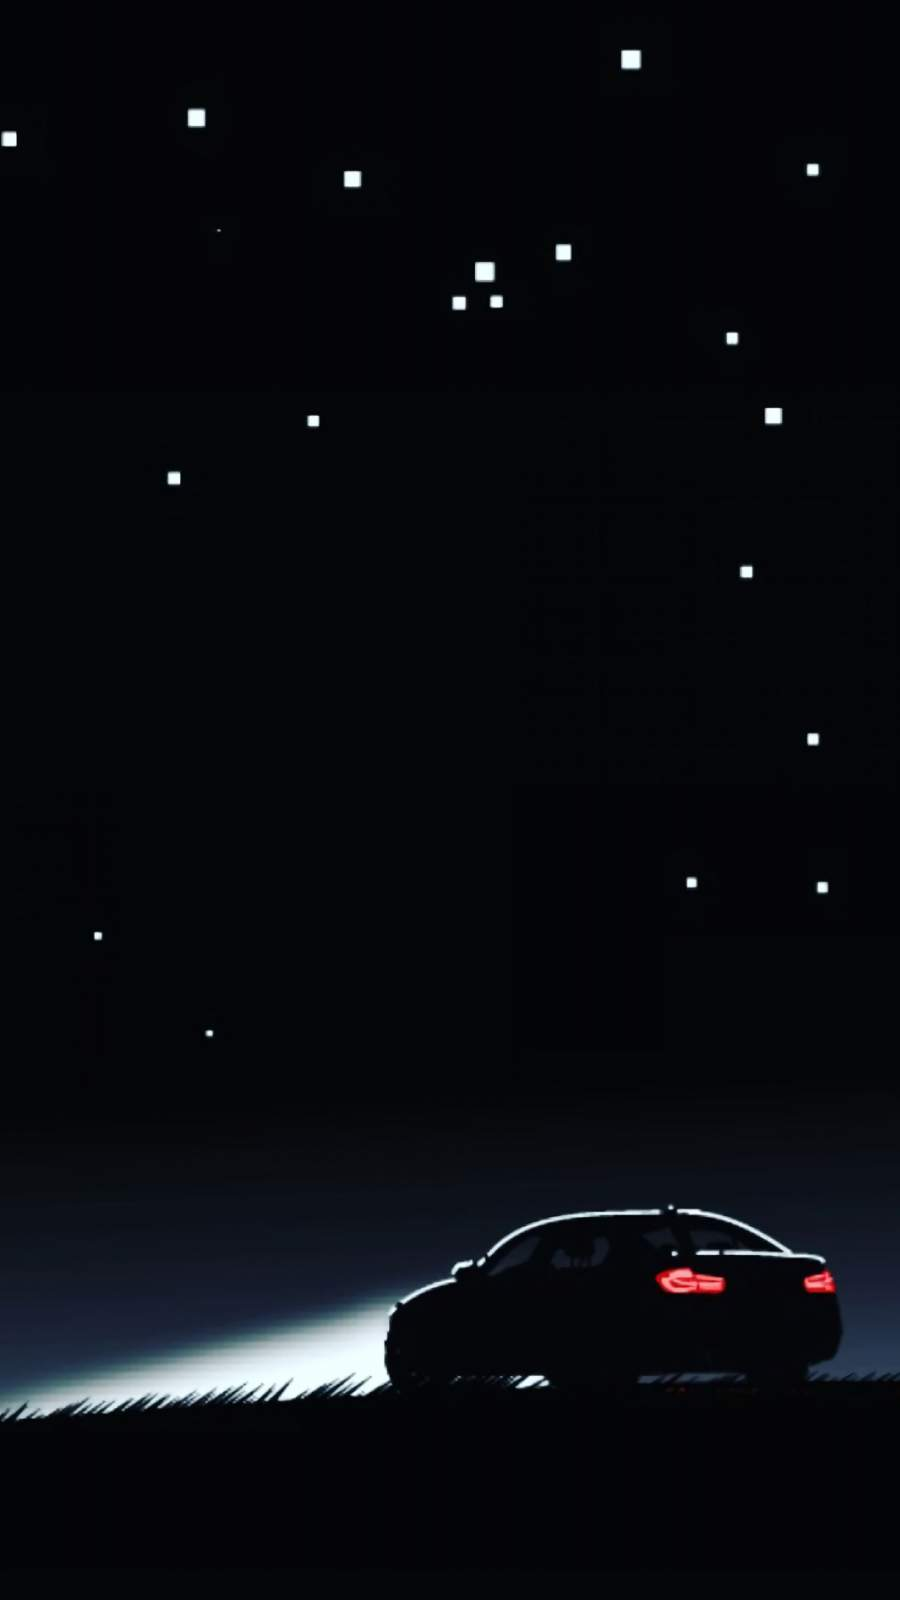 BMW Car Night iPhone Wallpaper